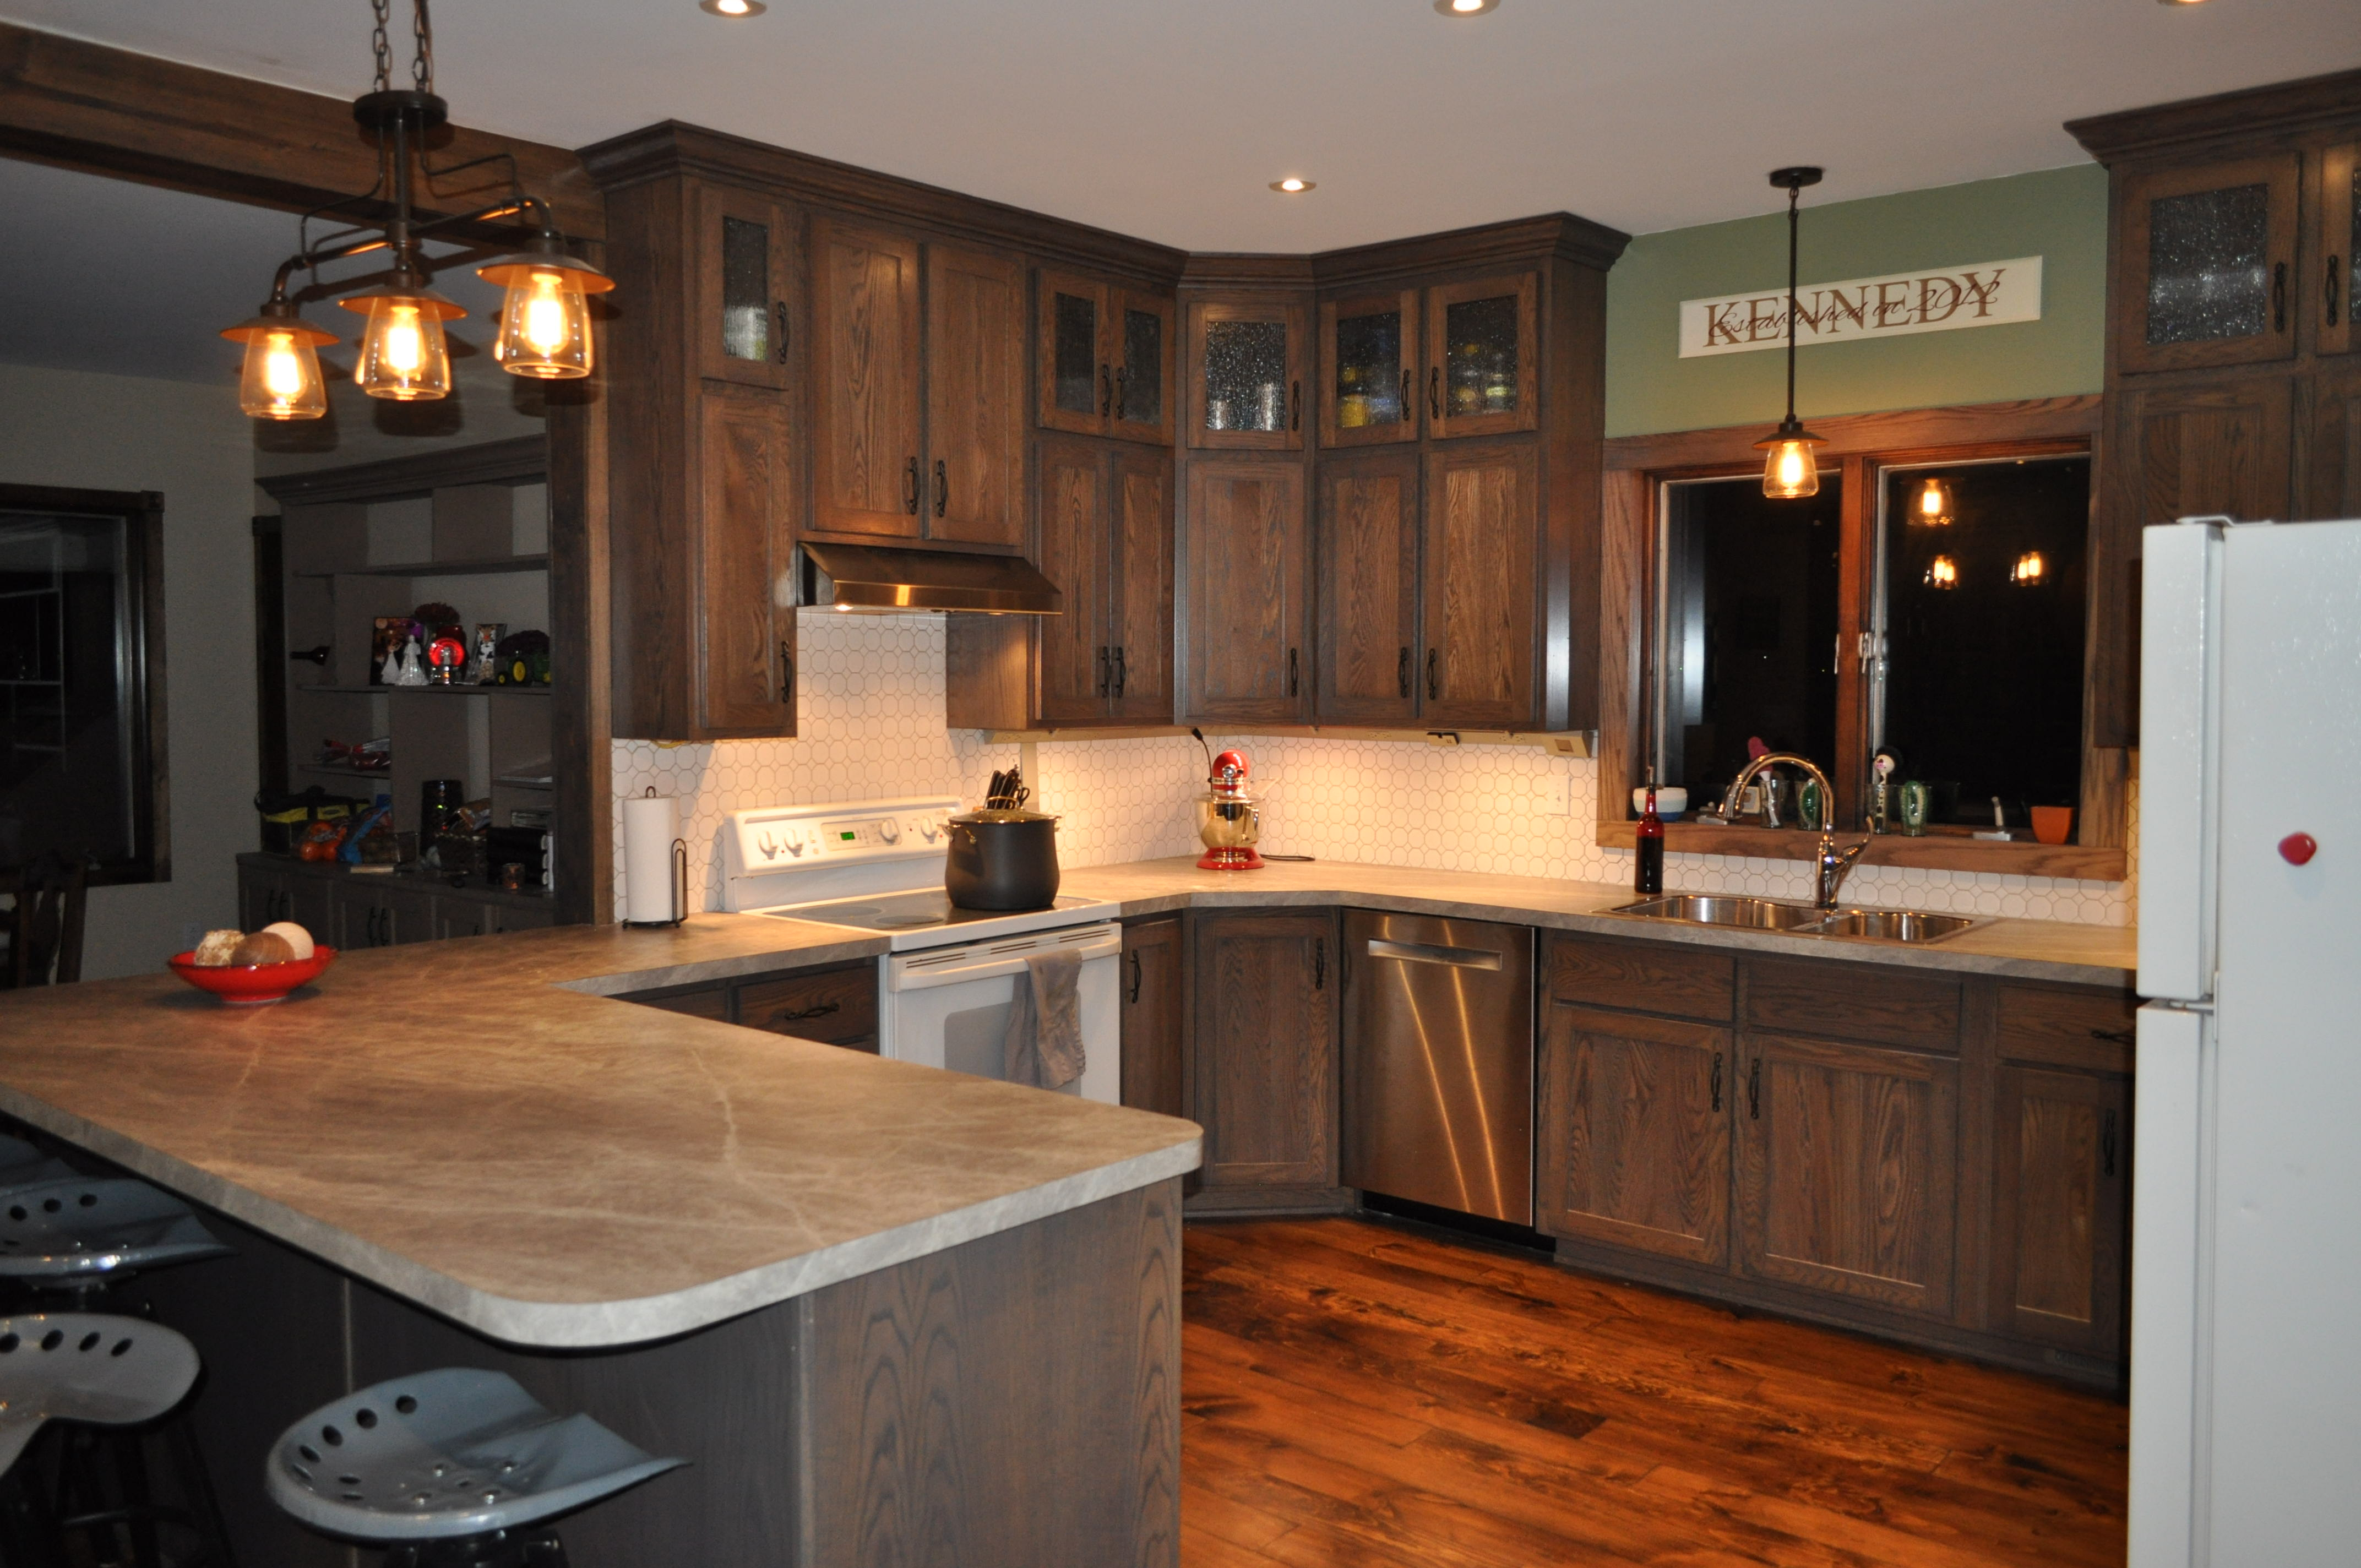 From Dated to Rustic Modern: Kitchen Remodel - Messy Kennedy